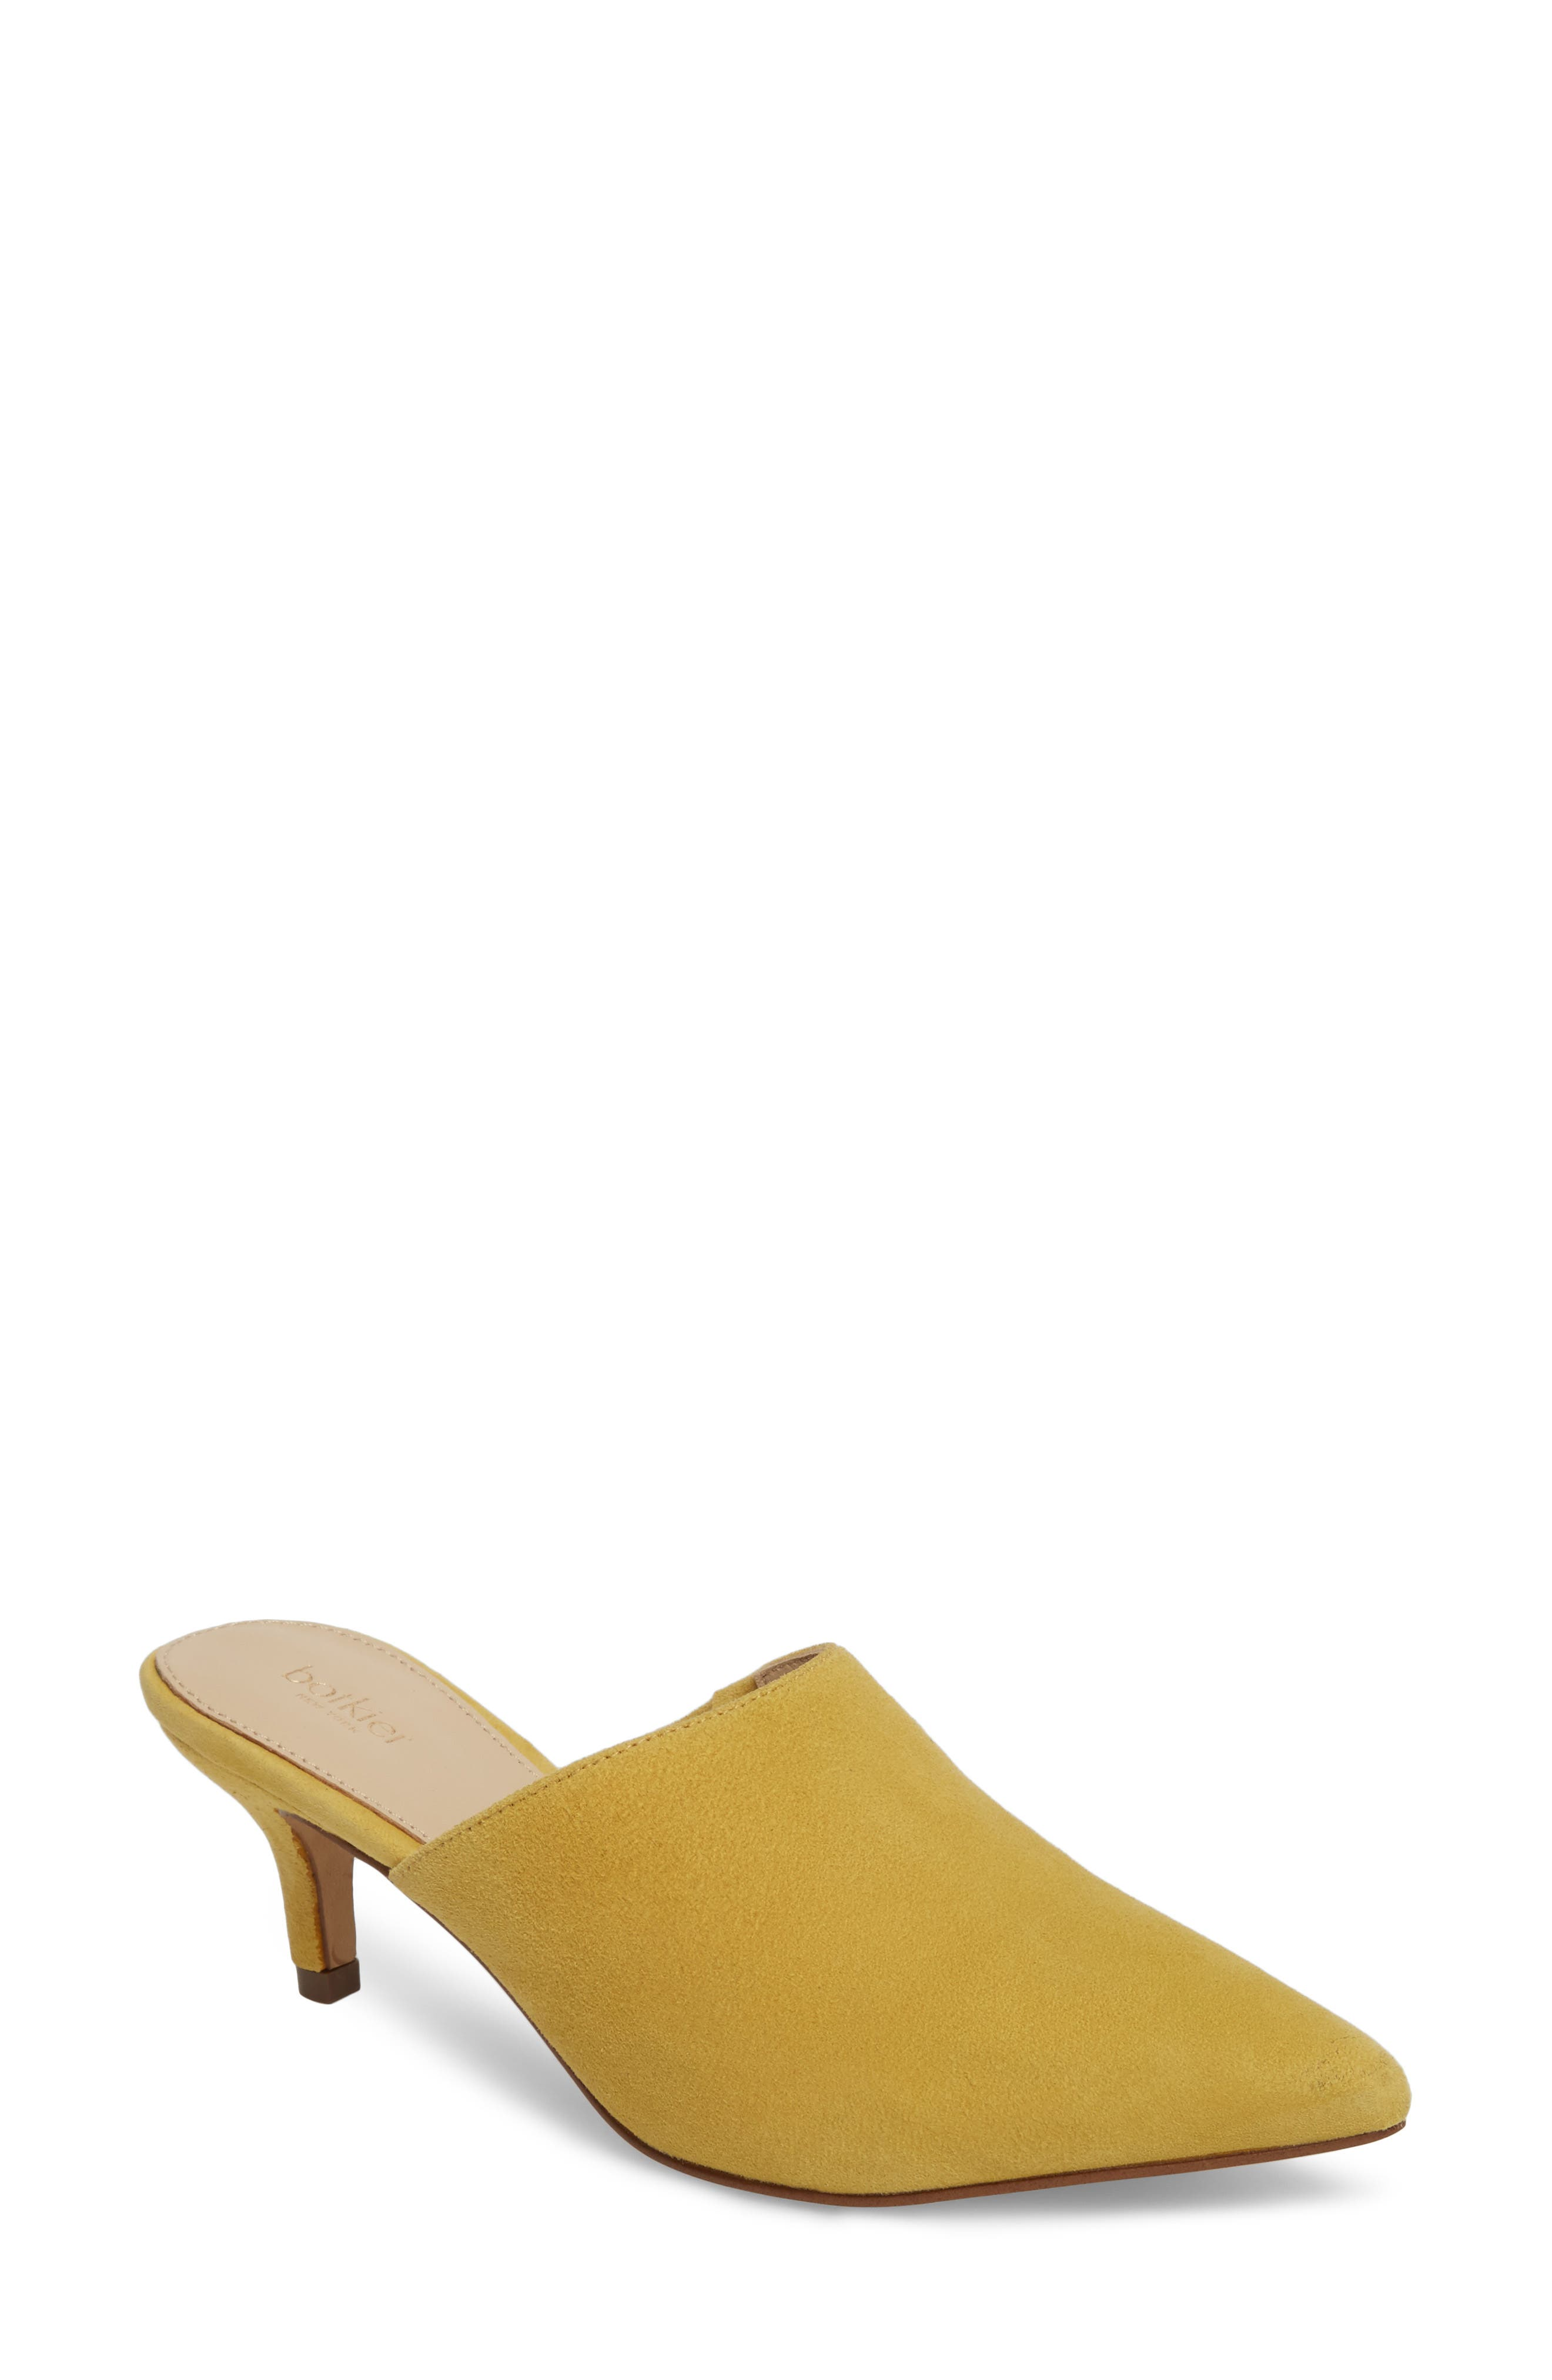 Paley Mule,                         Main,                         color, Pineapple Suede